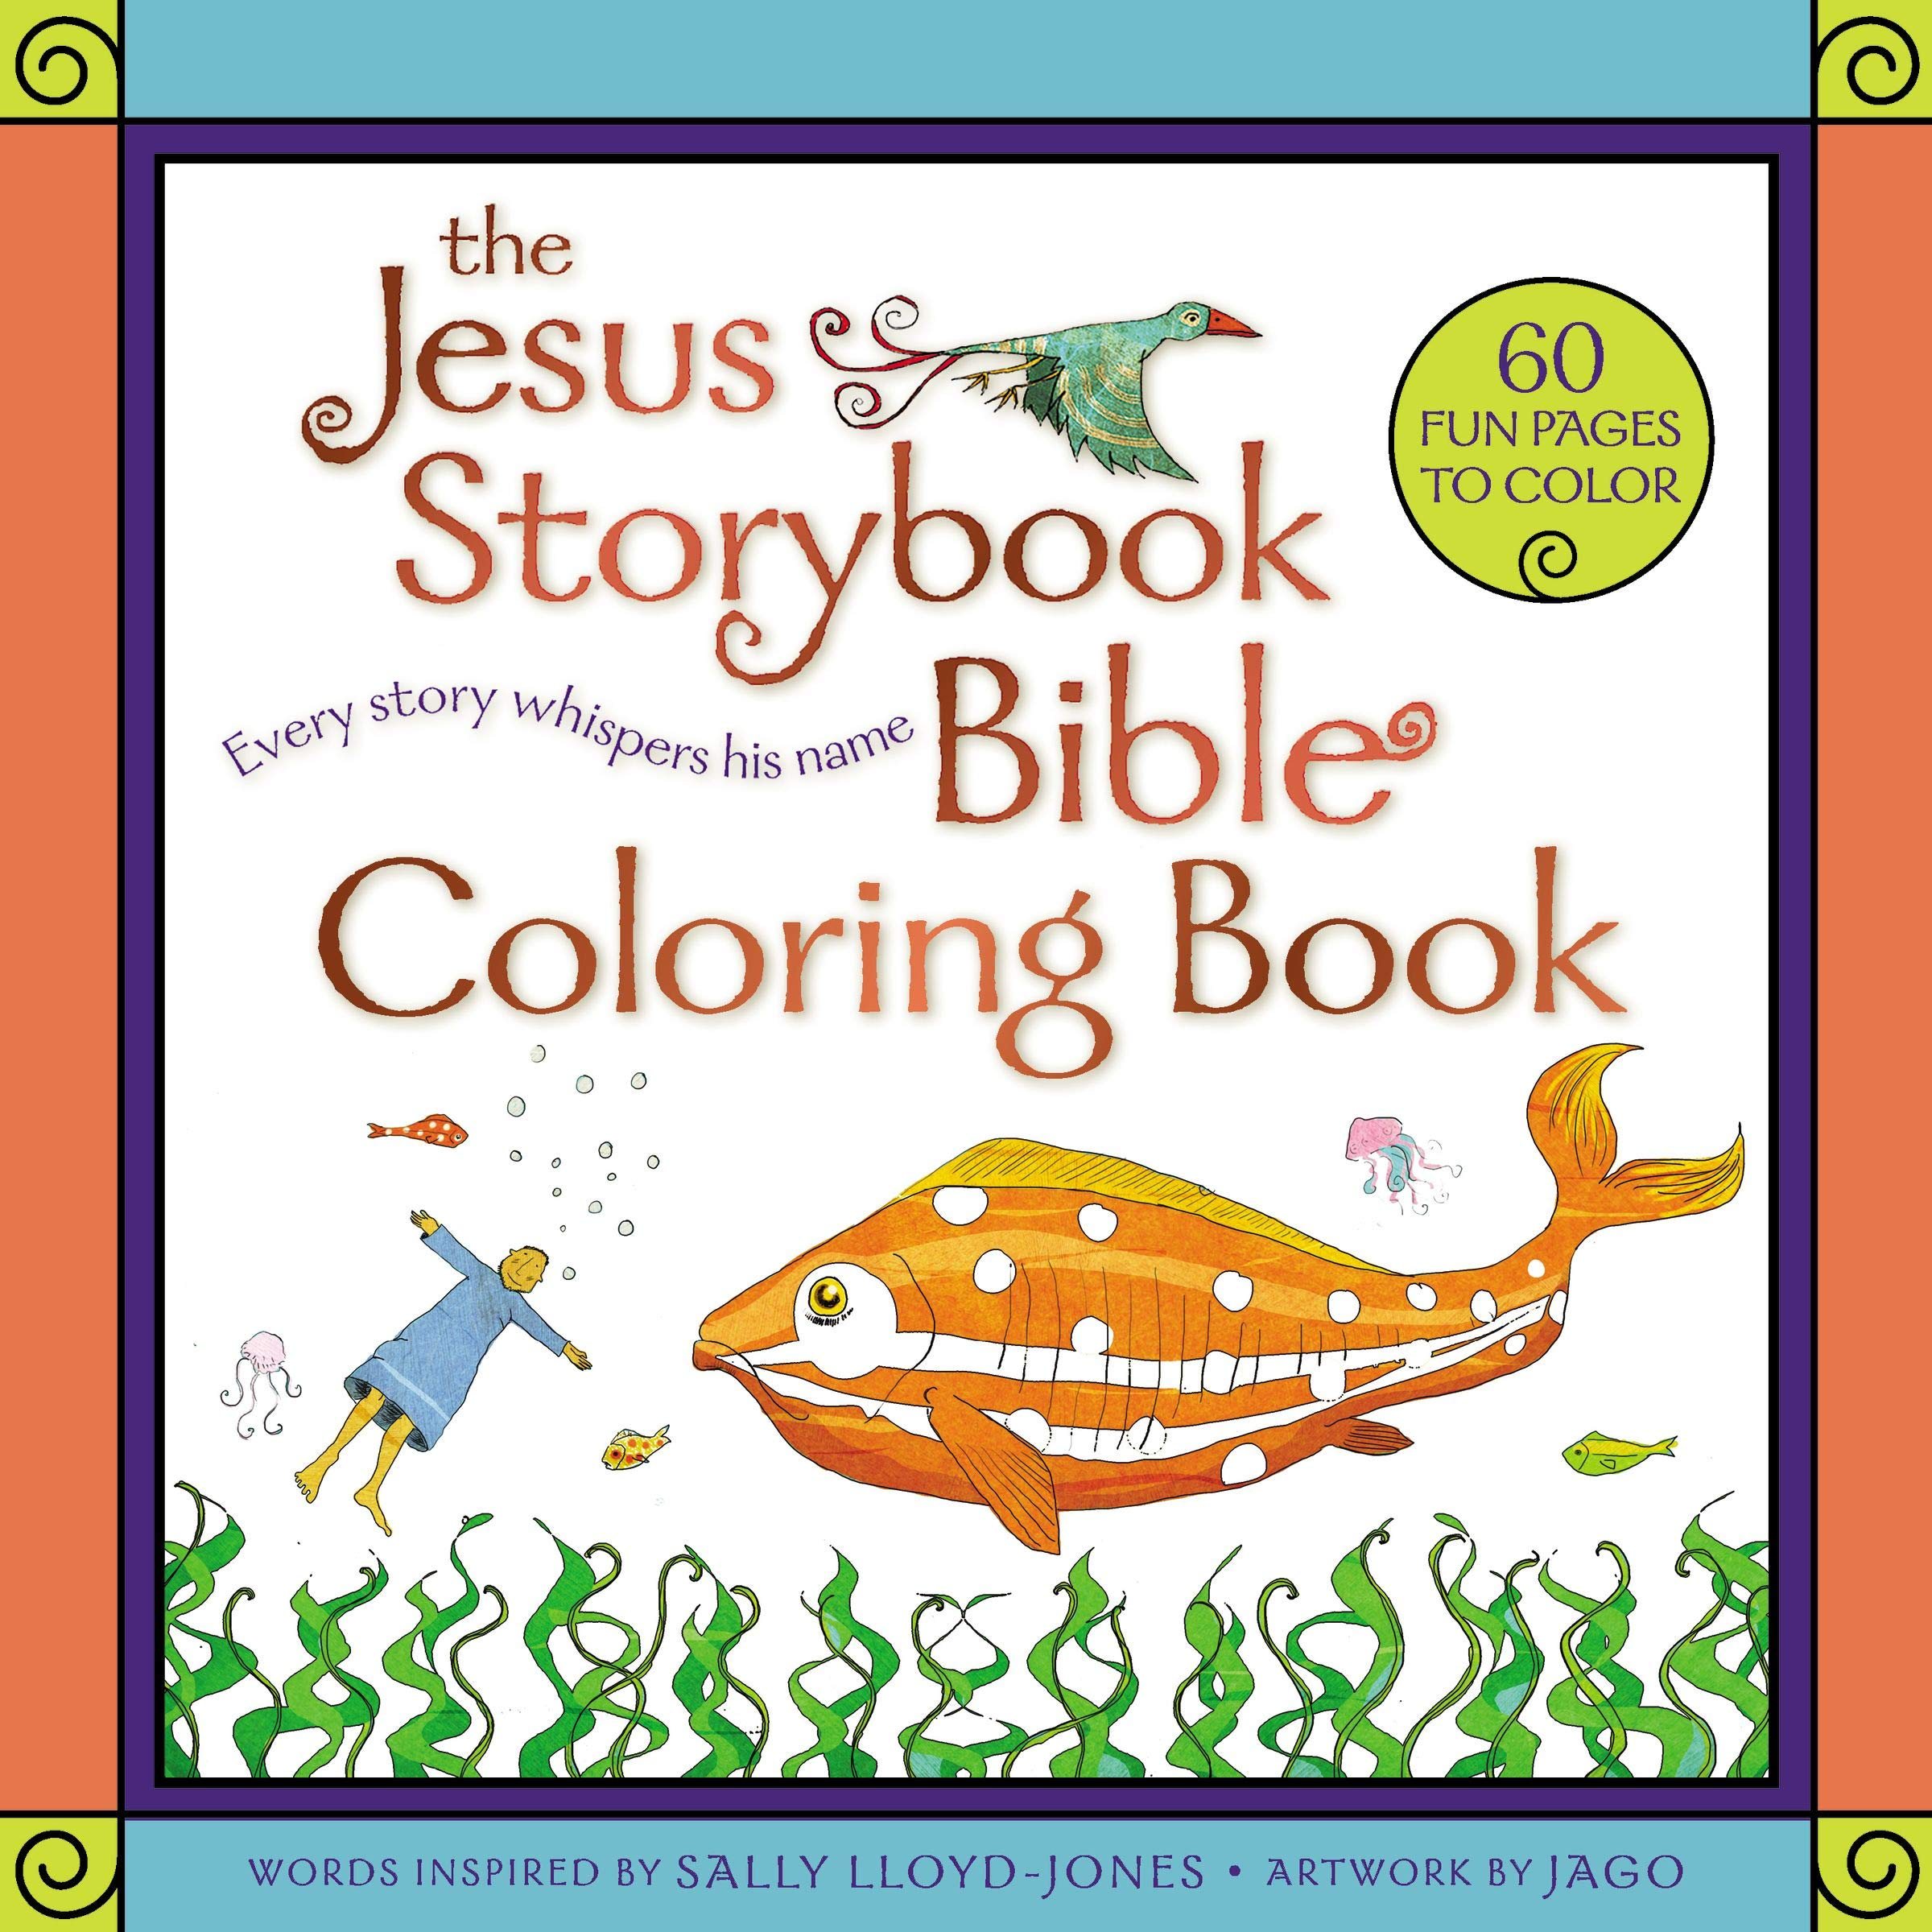 The Jesus Storybook Bible Coloring Book For Kids Every Story Whispers His Name Lloyd Jones Sally Jago 9780310769309 Amazon Com Books